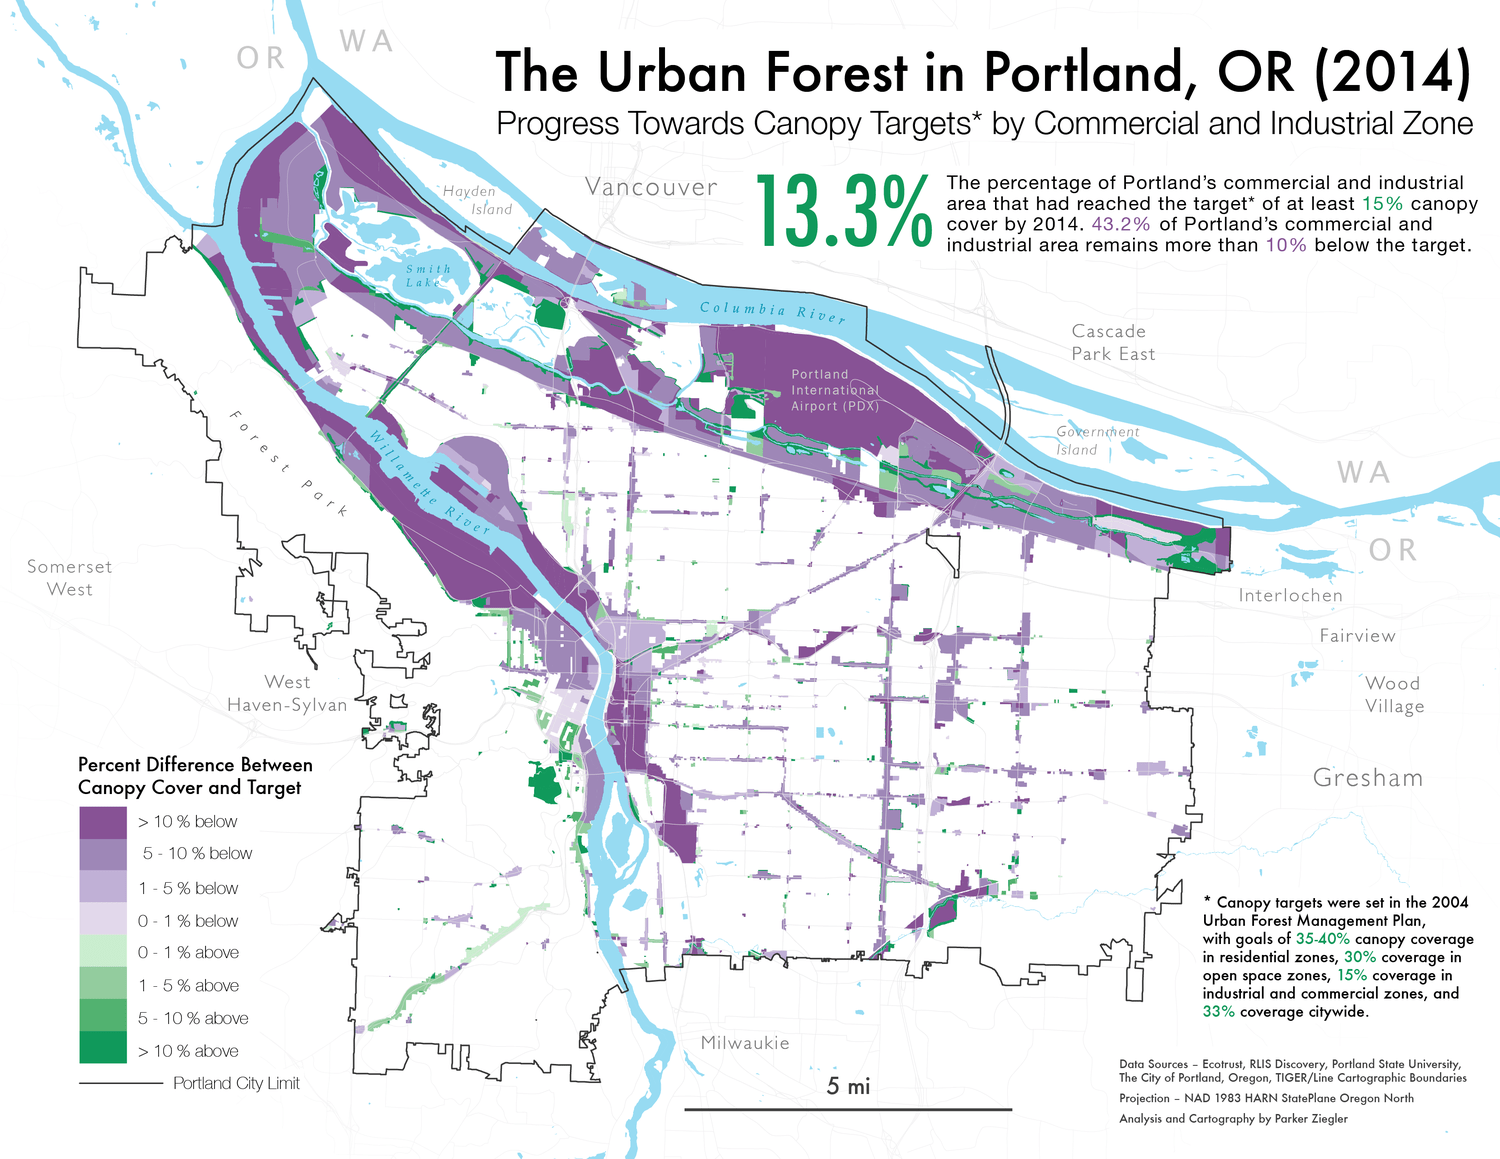 A map of Portland's urban canopy cover compared to city targets by Commercial and Industrial Zone in 2014.